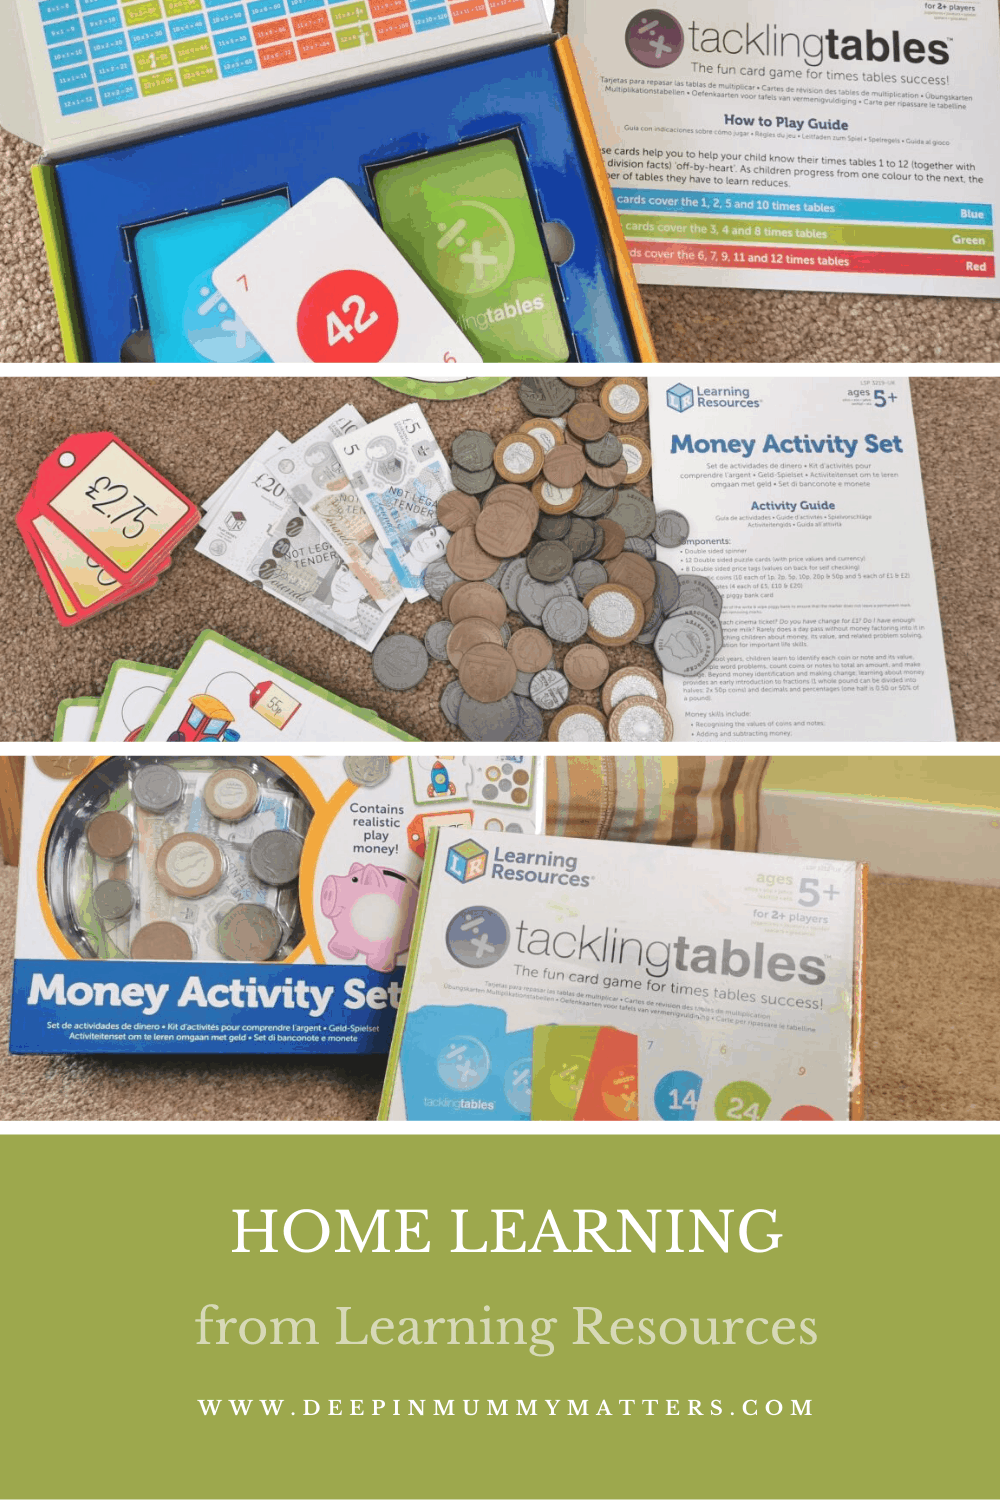 We have been using the Tackling Times Tables and Money Activity Set from Learning Resources to help supplement our homeschooling during the lockdown.